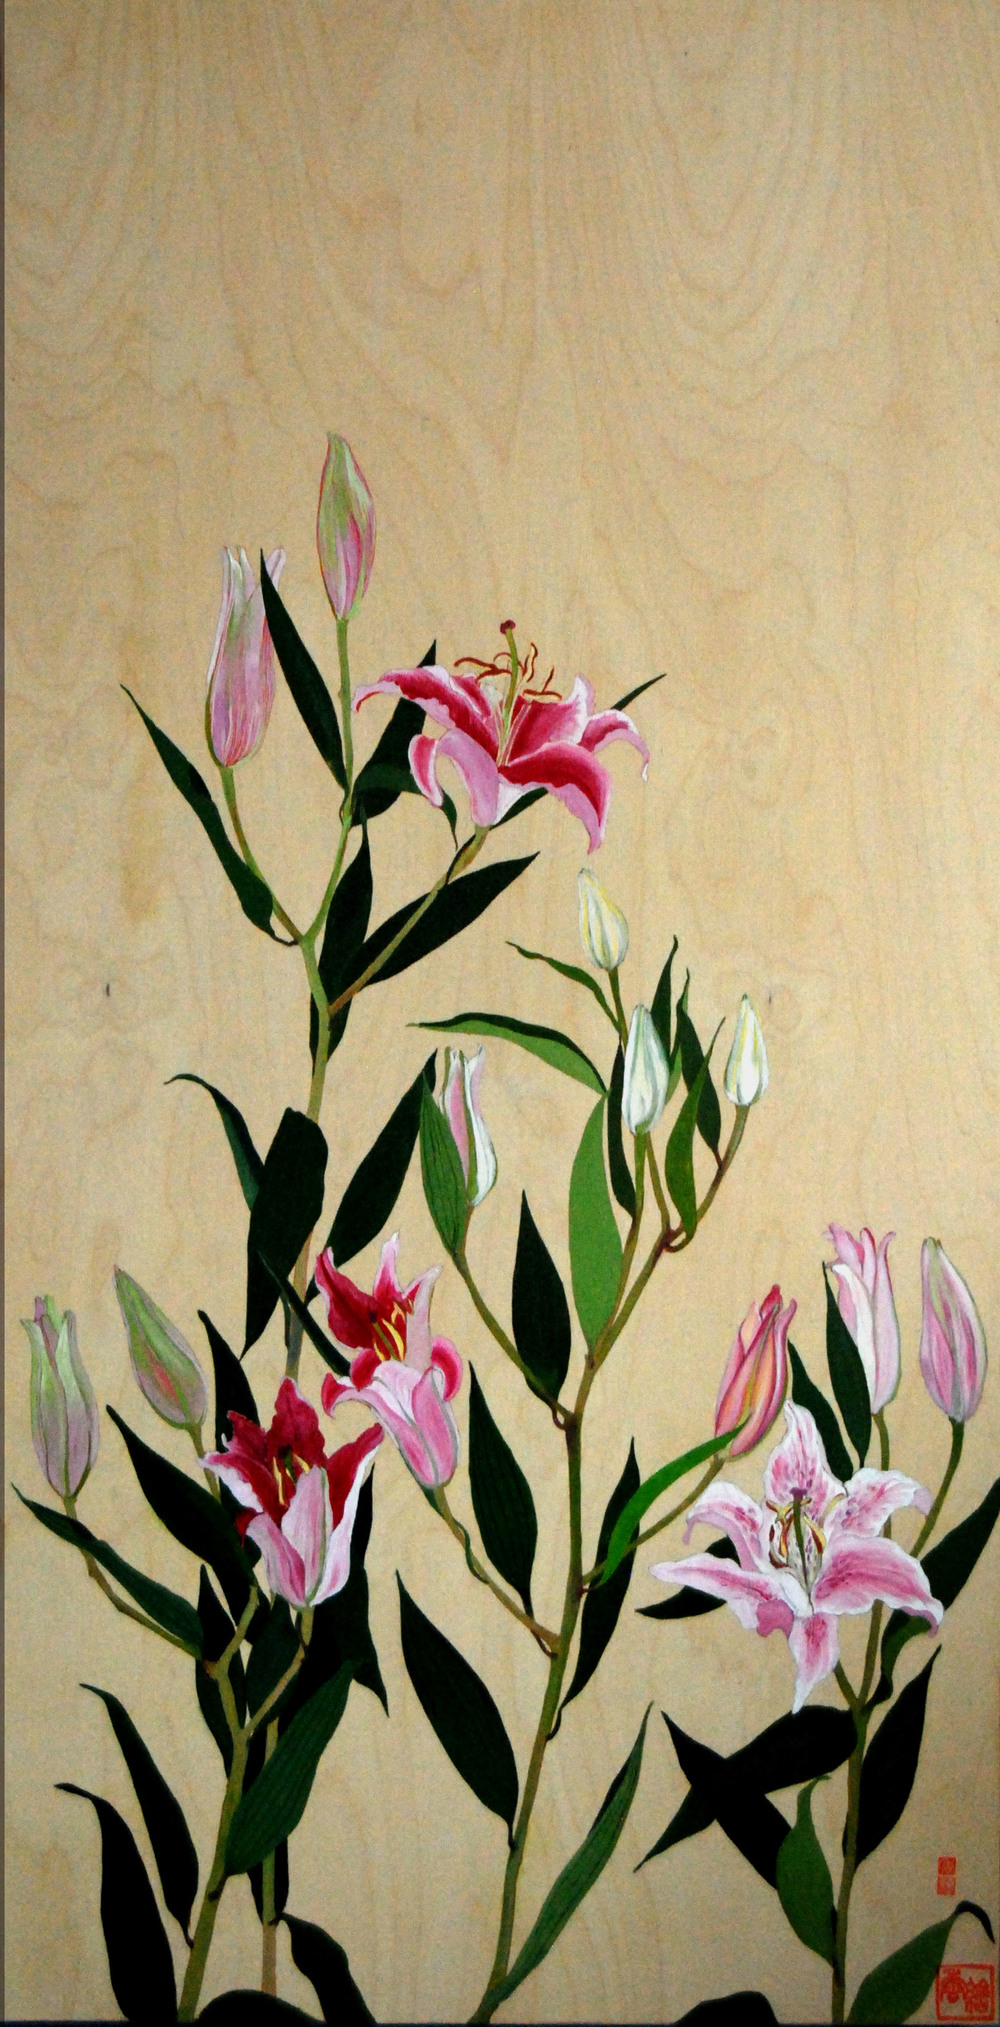 KS-022, Kae Sasaki, Untitled (Oriental Lilies), Oil on Wood Panel, 24 x 48, 2013